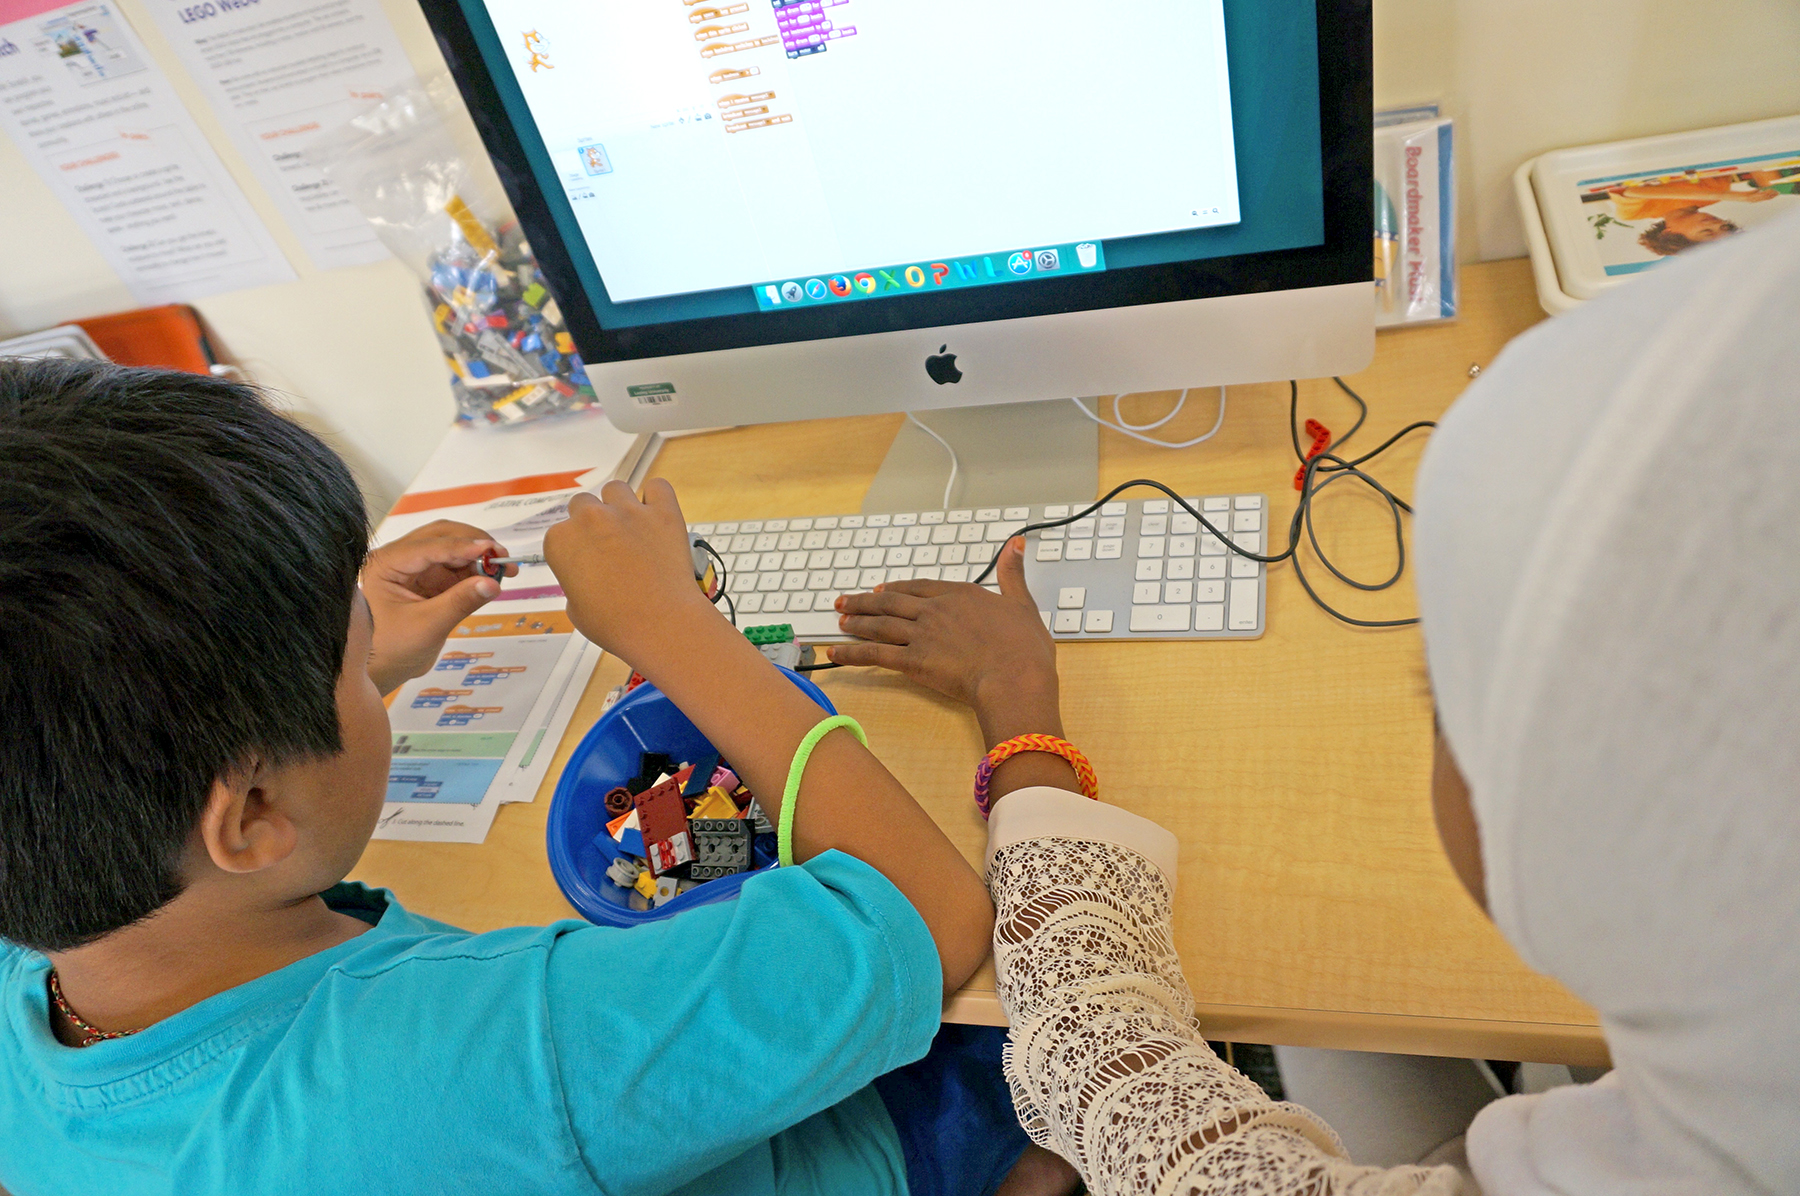 Two students engage with Scratch and Lego Wedo robotics at computer terminal